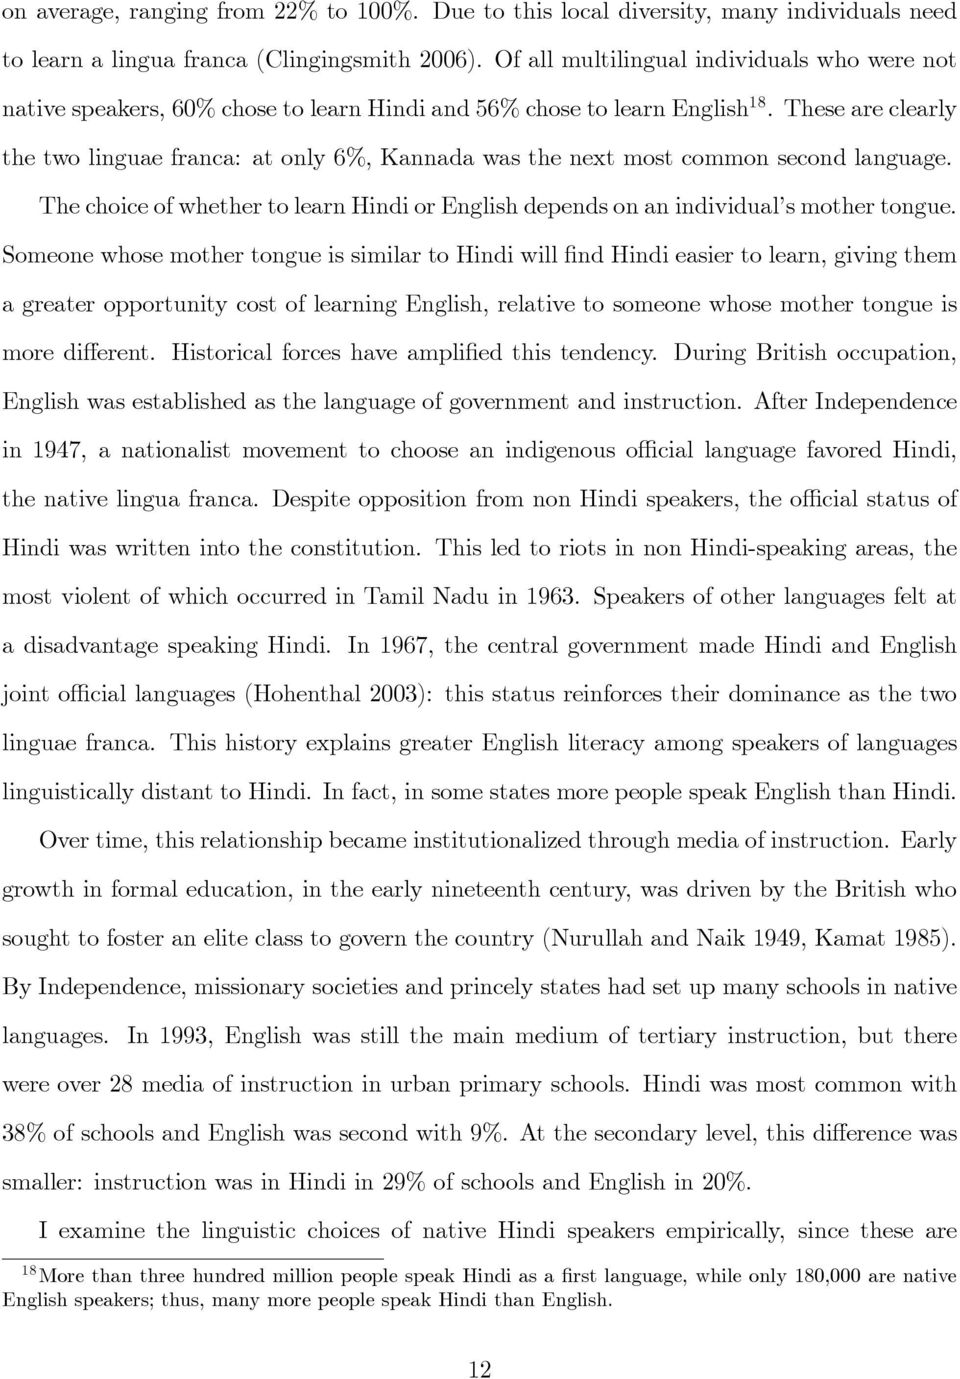 These are clearly the two linguae franca: at only 6%, Kannada was the next most common second language. The choice of whether to learn Hindi or English depends on an individual s mother tongue.